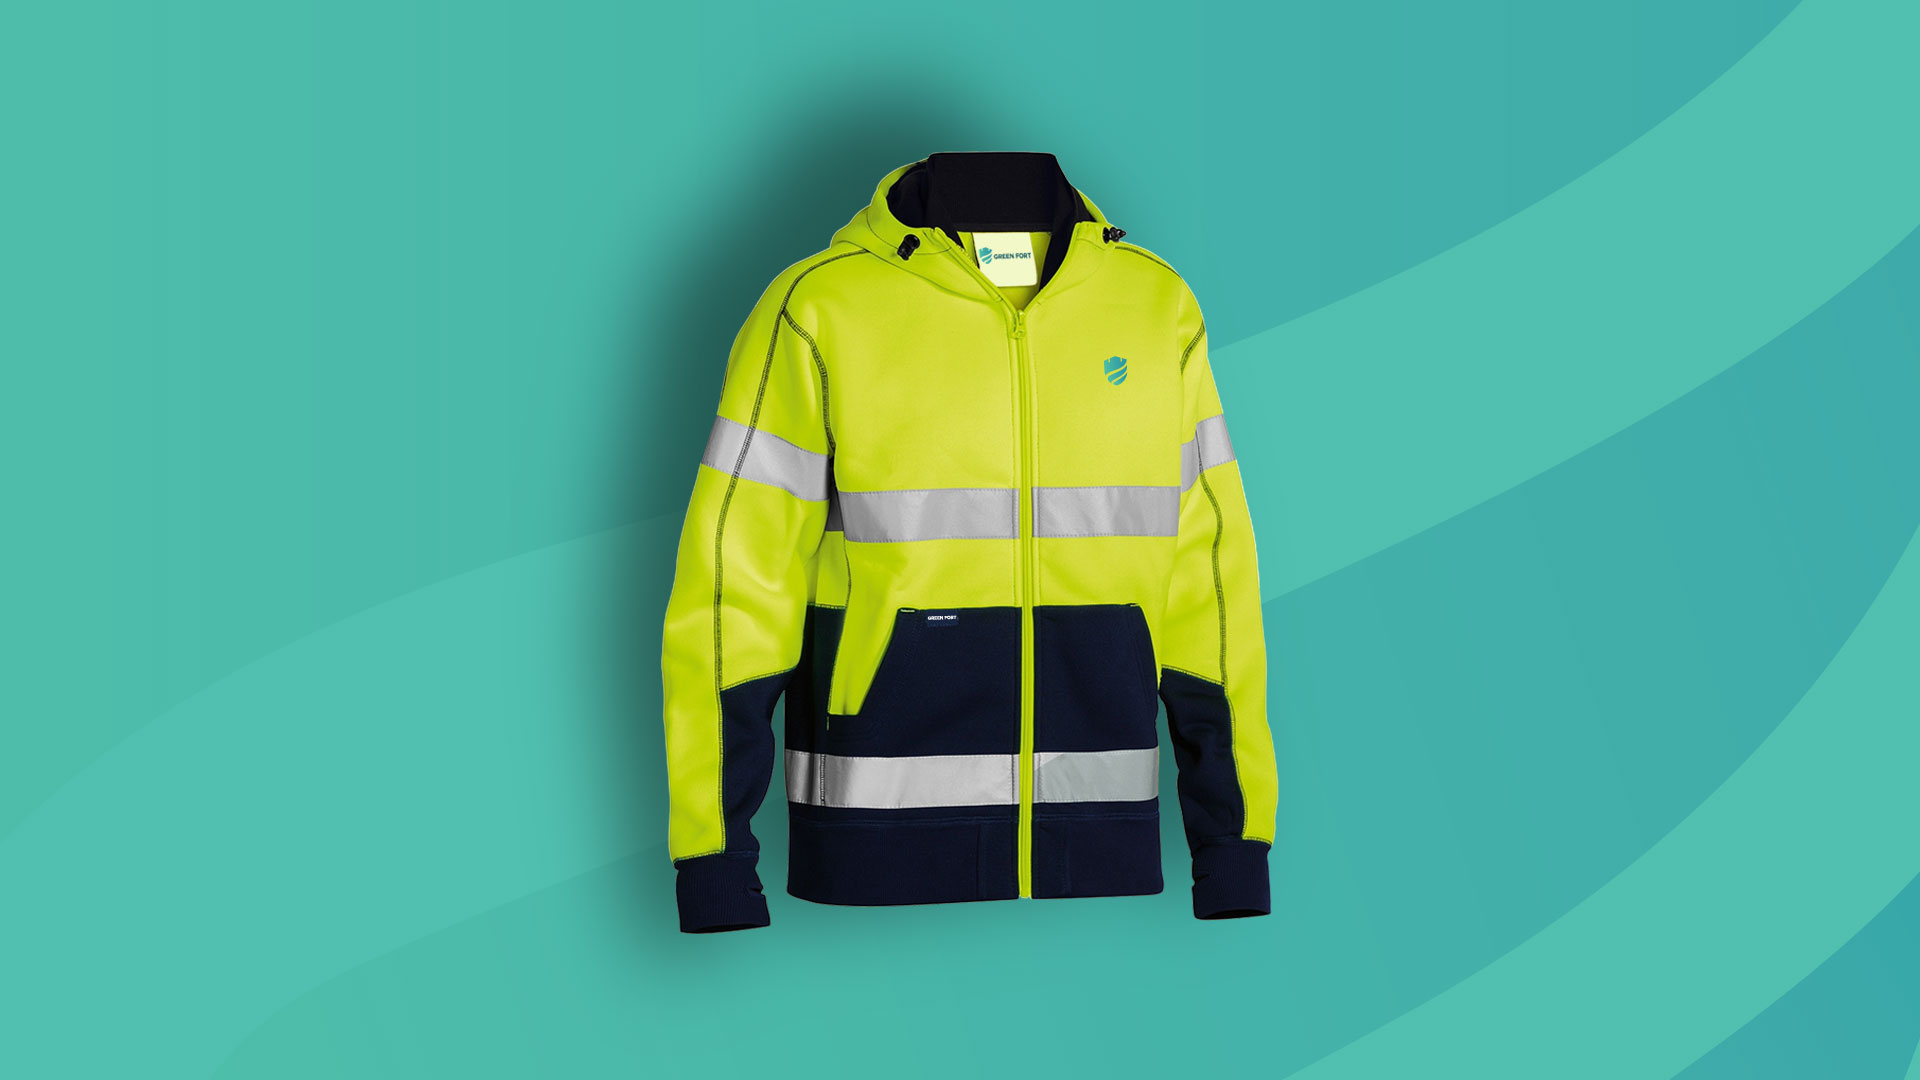 Green Fort Oil and Gas Safety Apparel Design